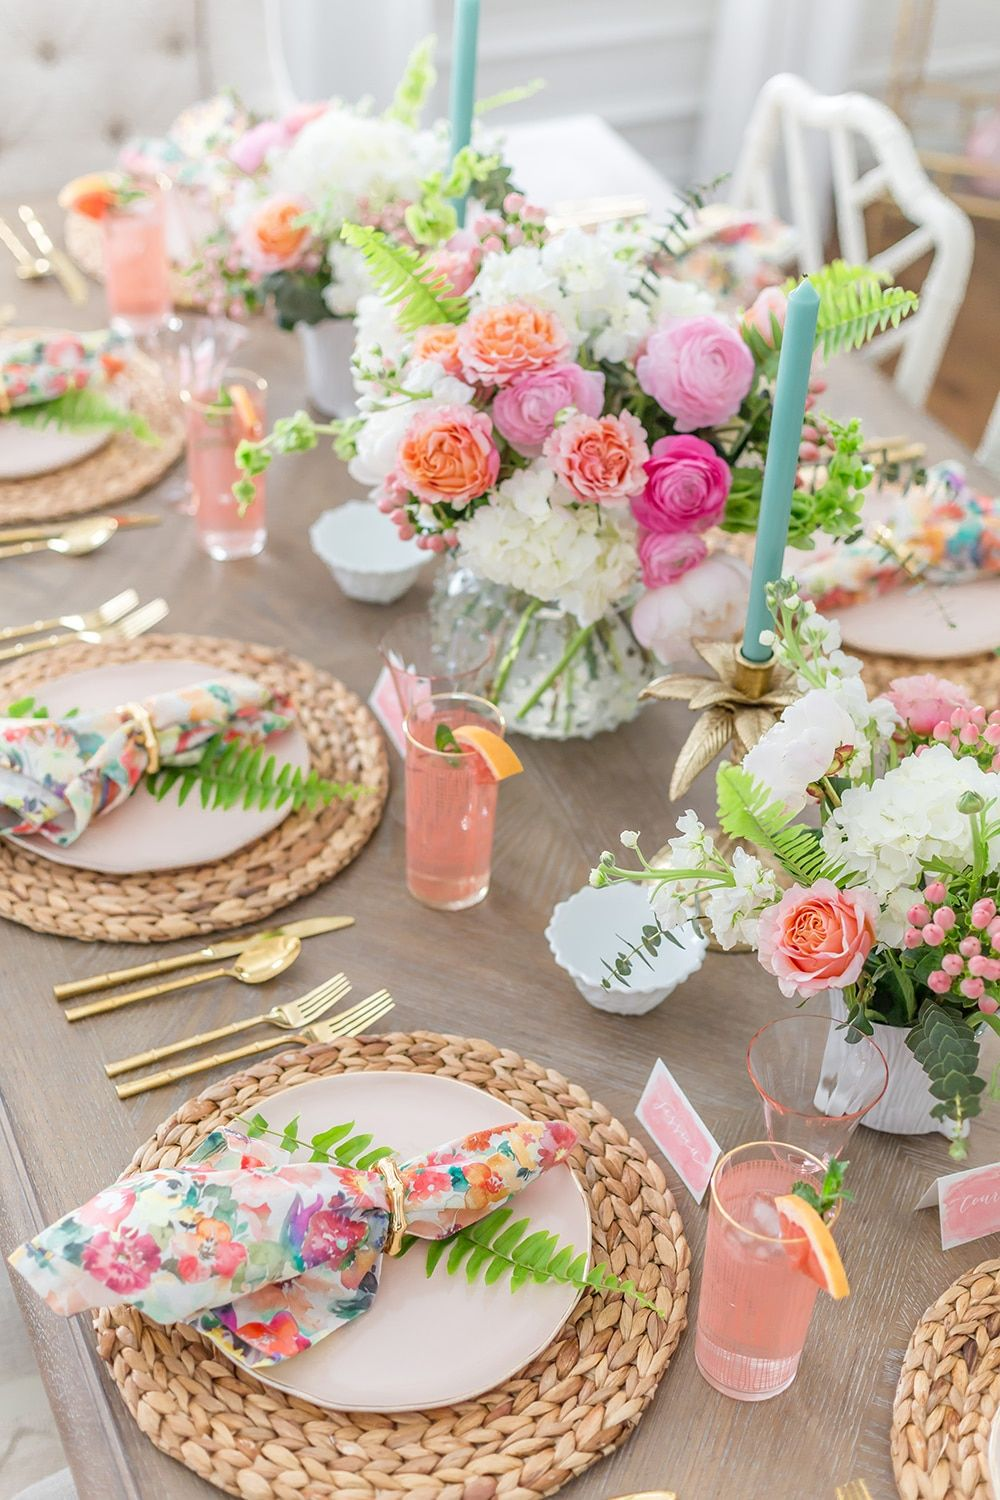 Tips to Set a Gorgeous Floral Summer Tablescape